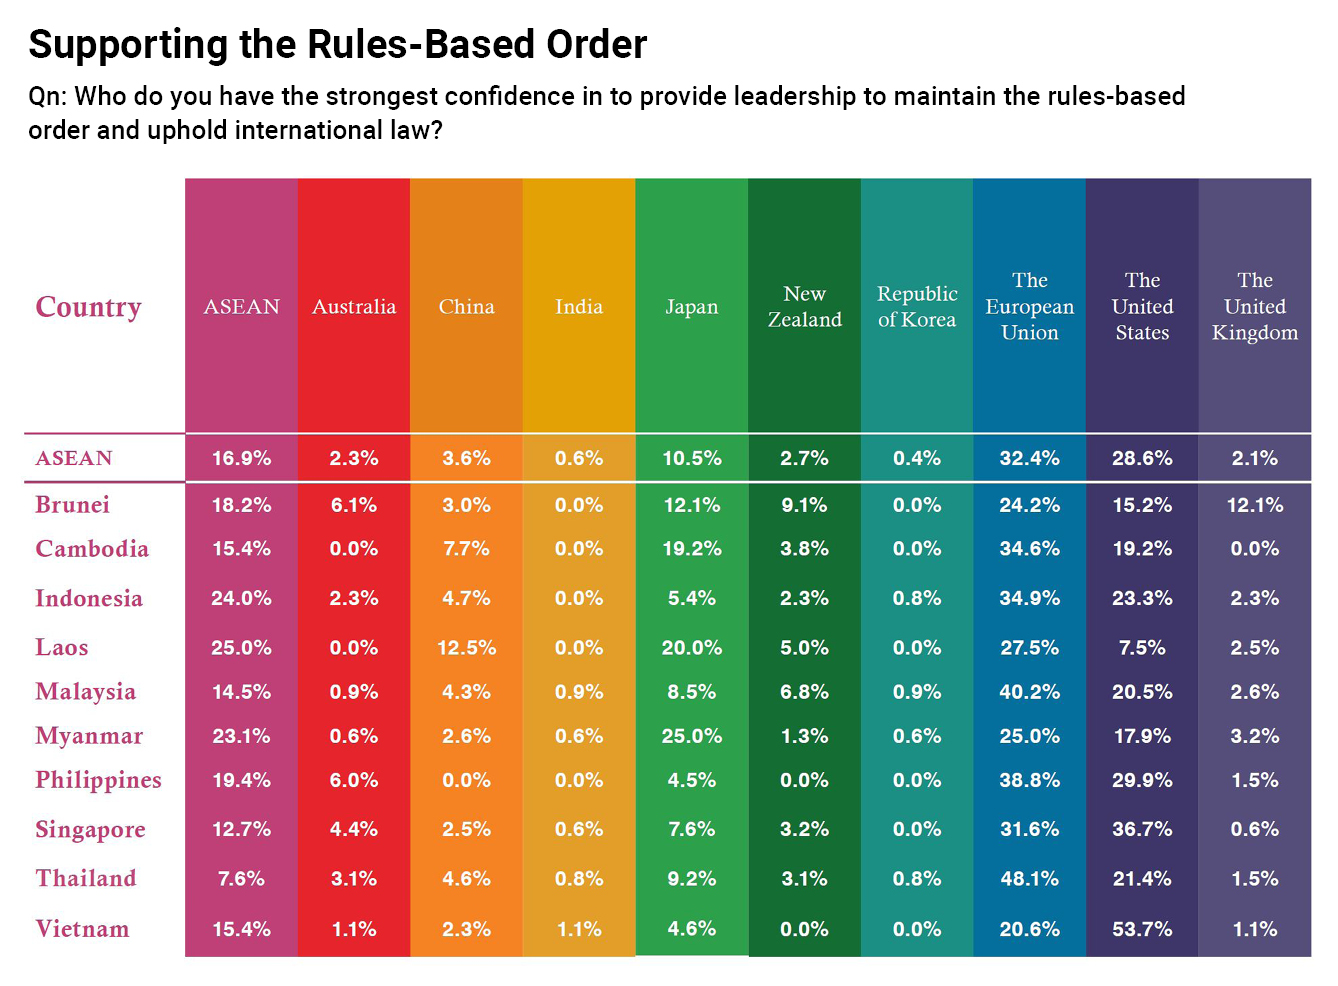 chart on Supporting the Rules-Based Order